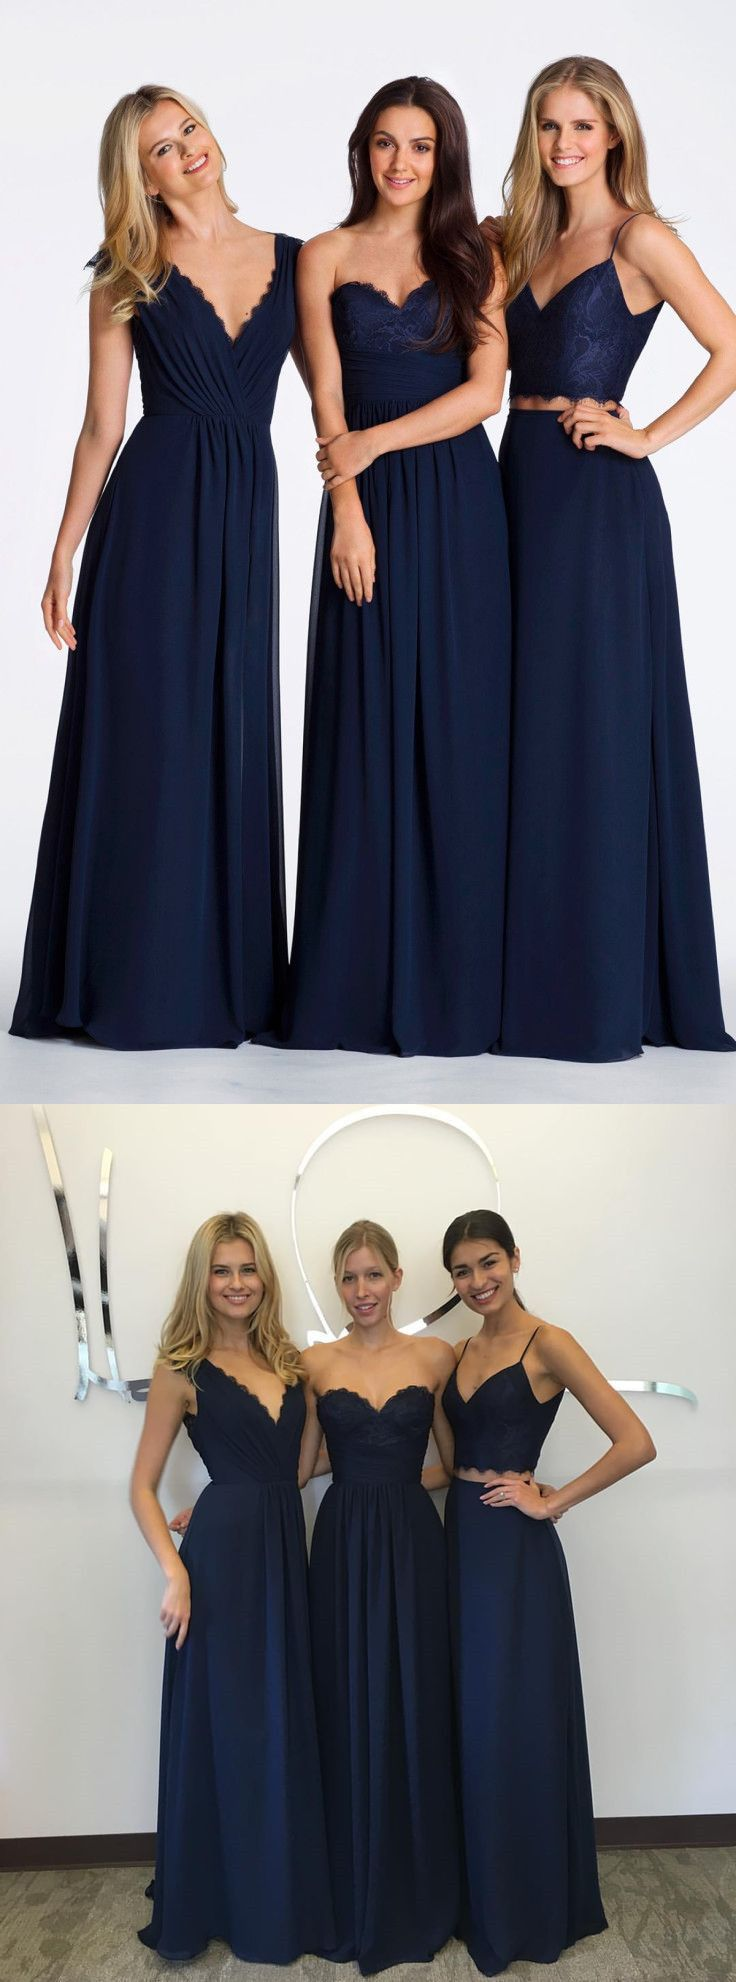 Best 20 navy bridesmaid dresses ideas on pinterestno signup long bridesmaid dresses navy blue bridesmaid dresses 2016 bridesmaid dresses ombrellifo Choice Image